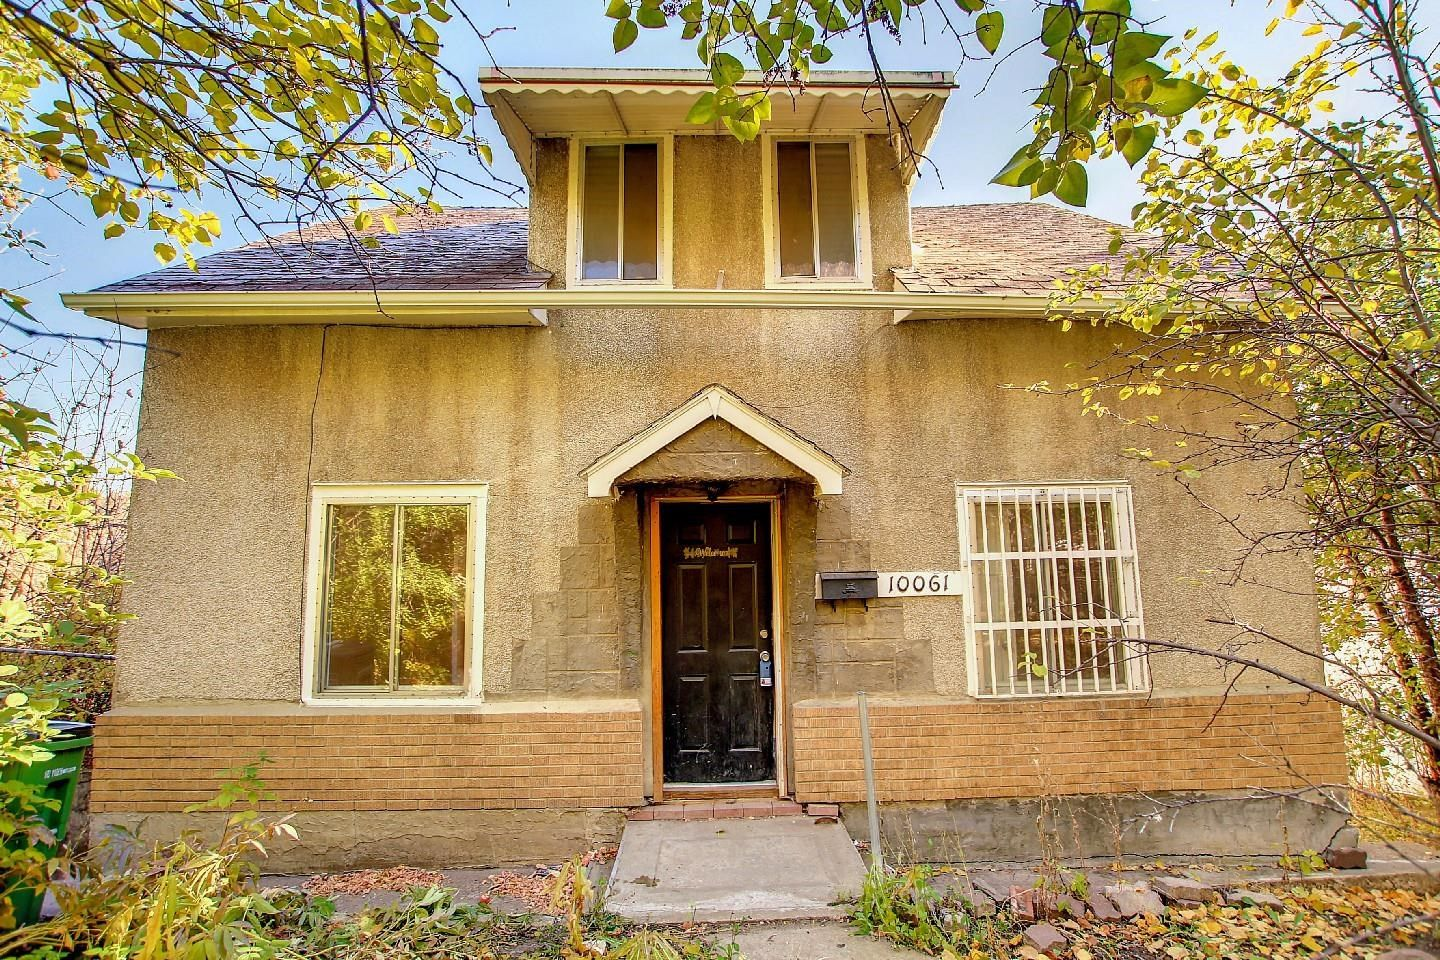 Main Photo: 10061 94 Street NW in Edmonton: Zone 13 House for sale : MLS®# E4266327